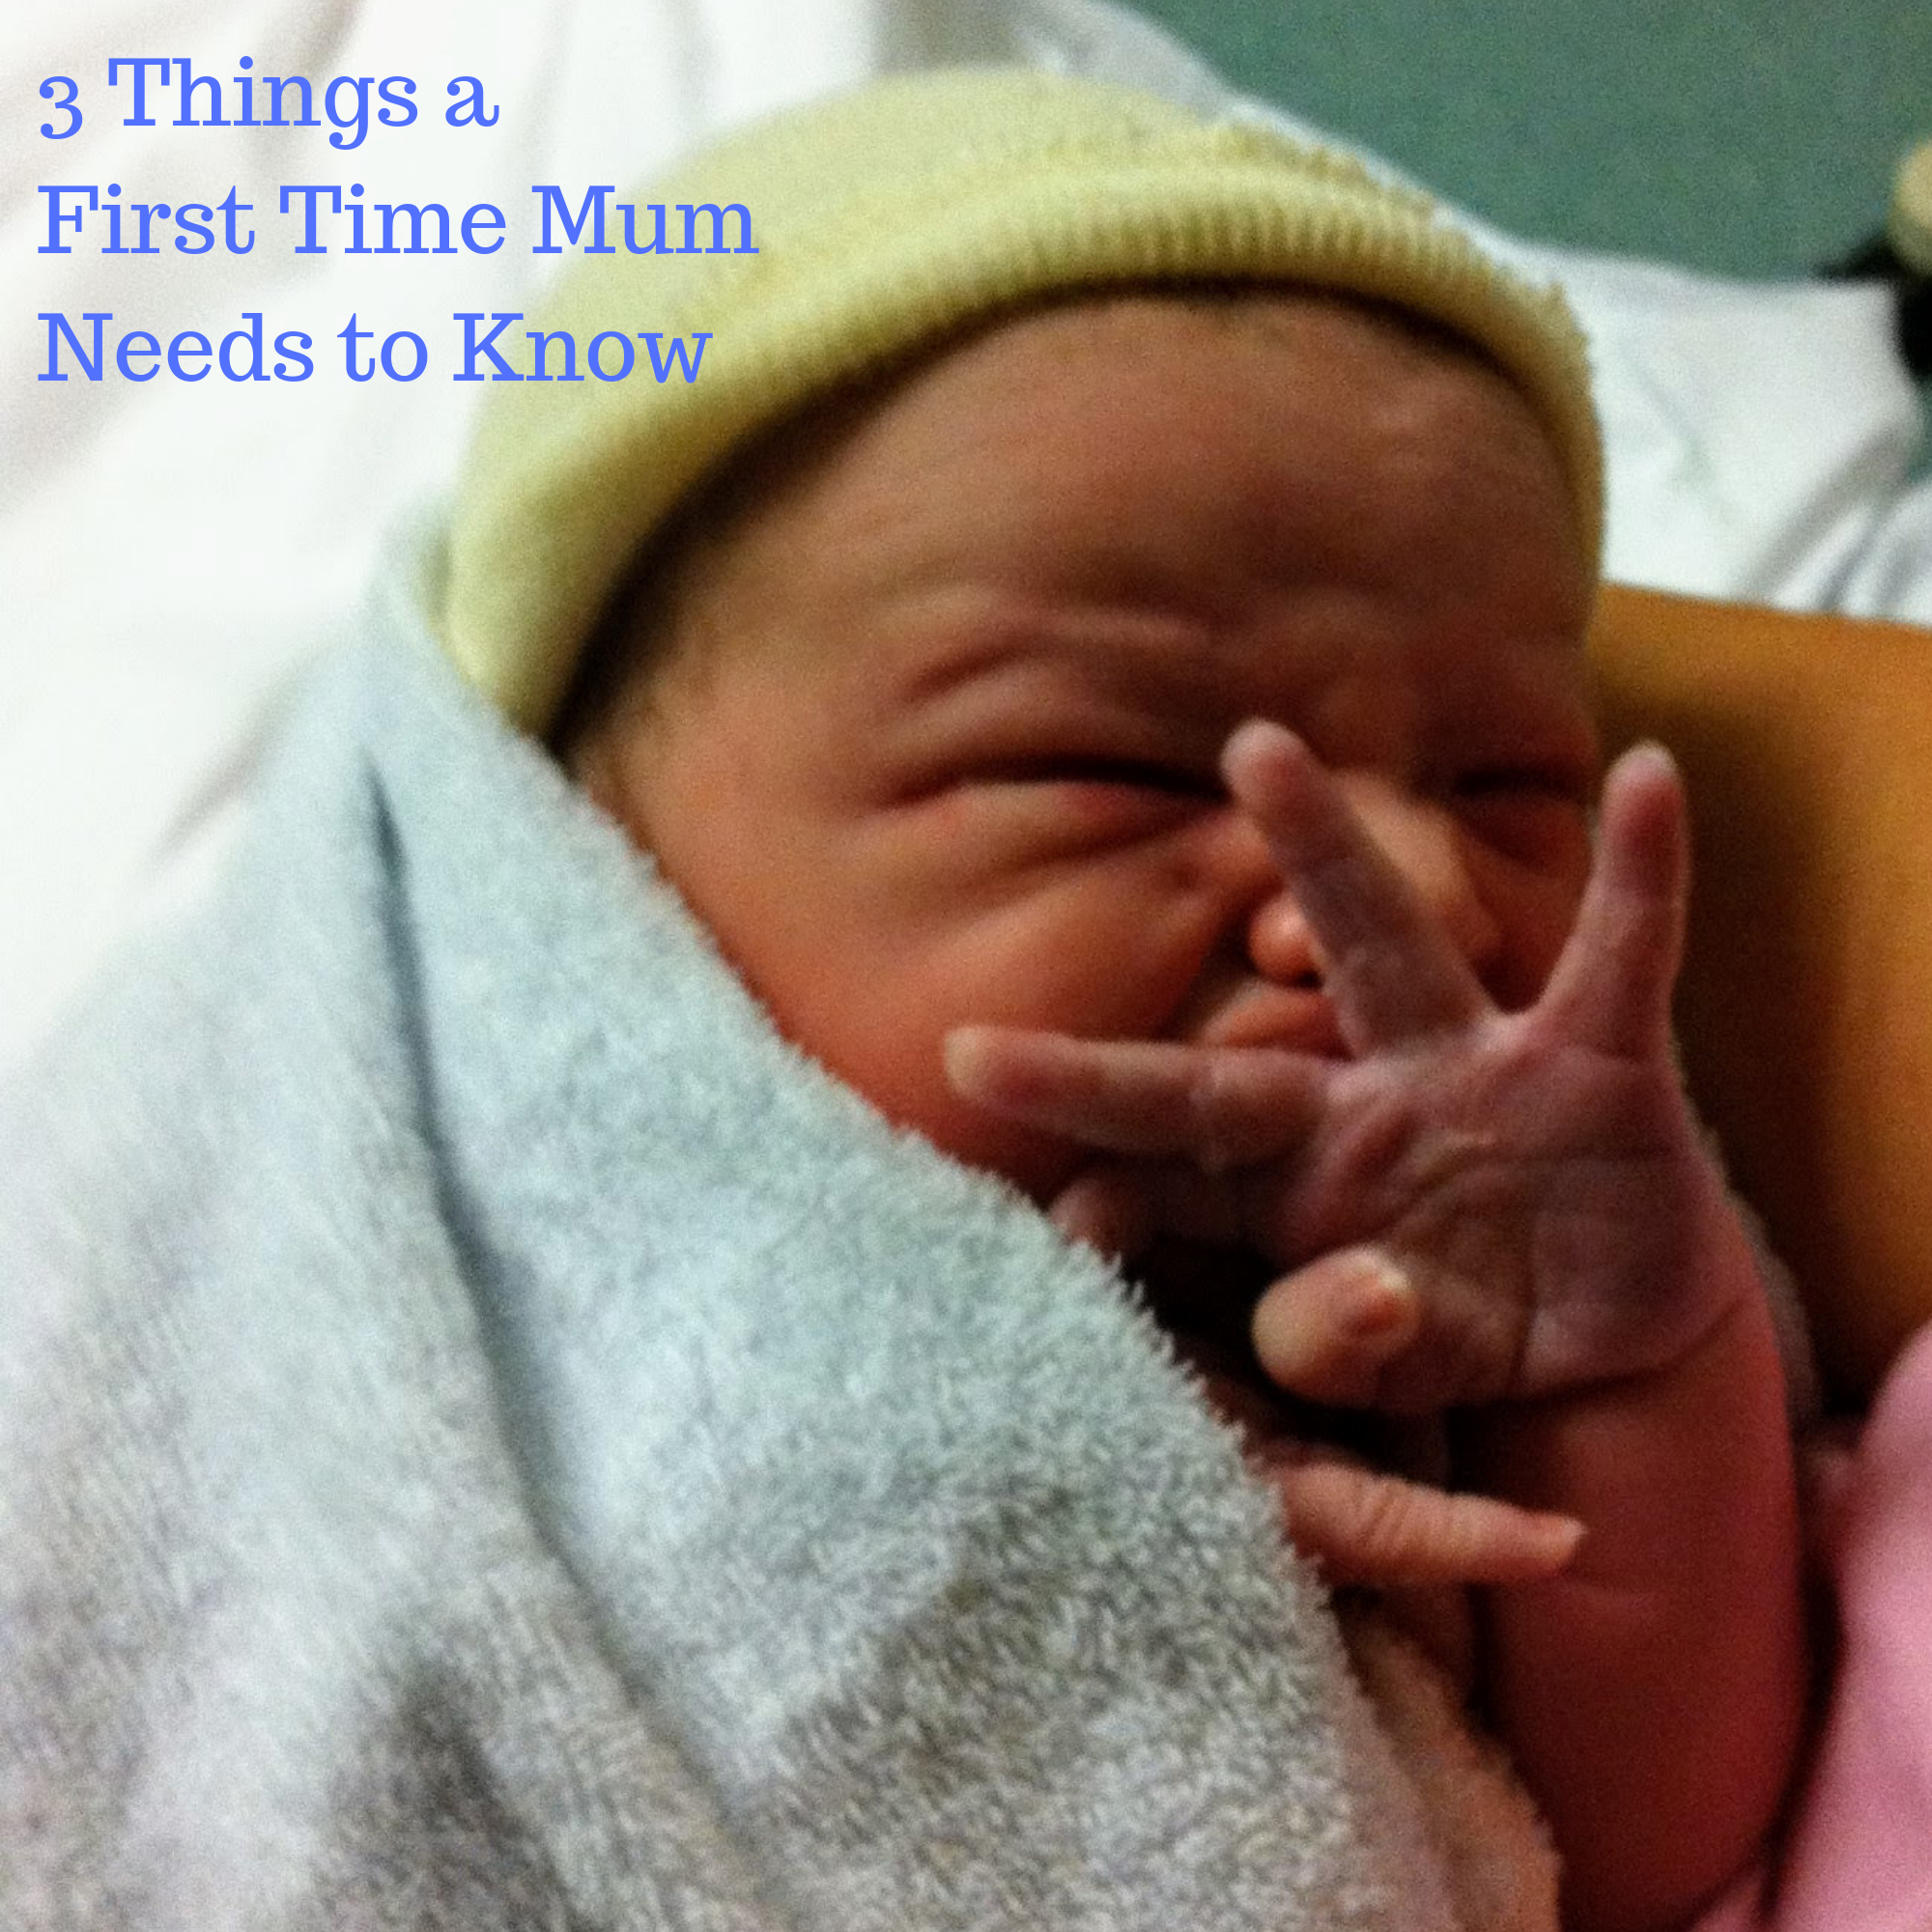 3 Things a First Time Mum Needs to Know